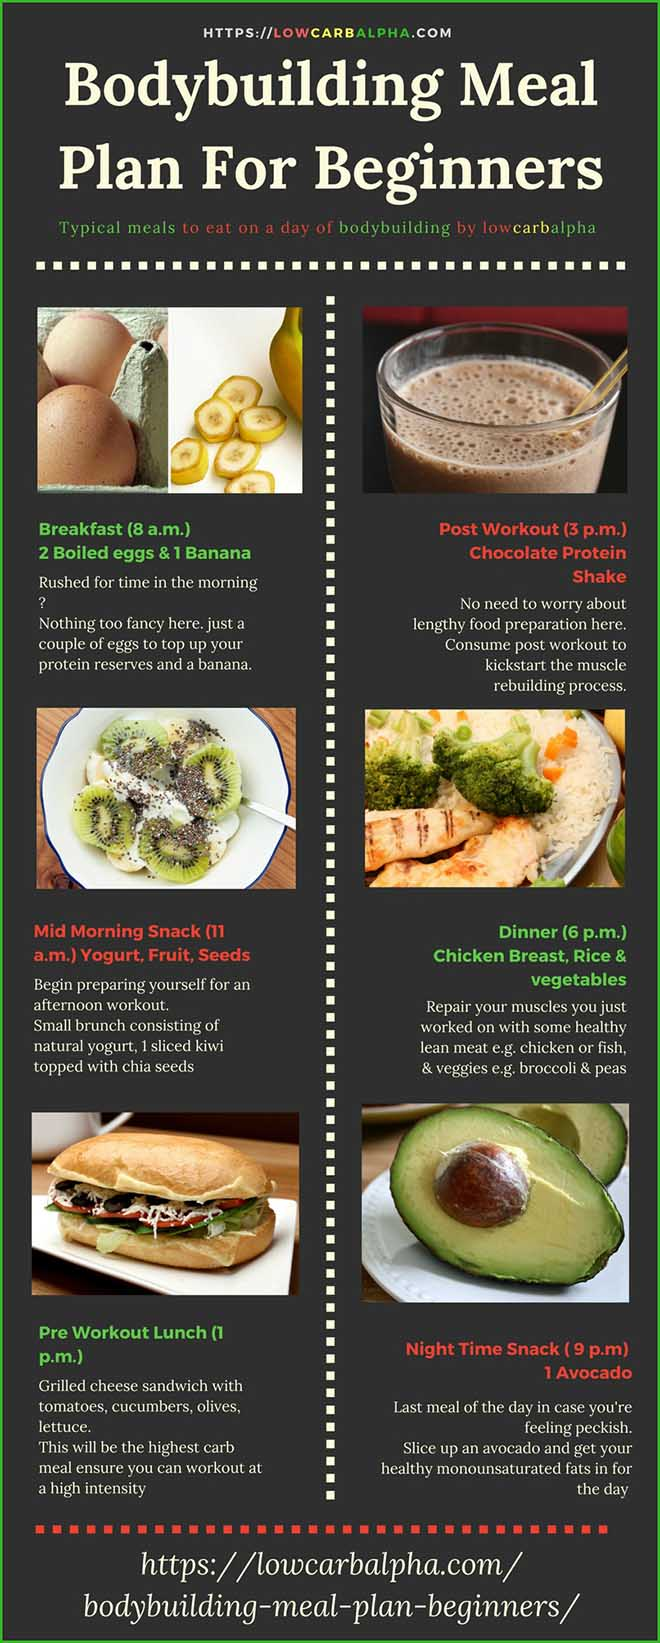 Bodybuilding Meal Plan For Beginners Sample Foods for a